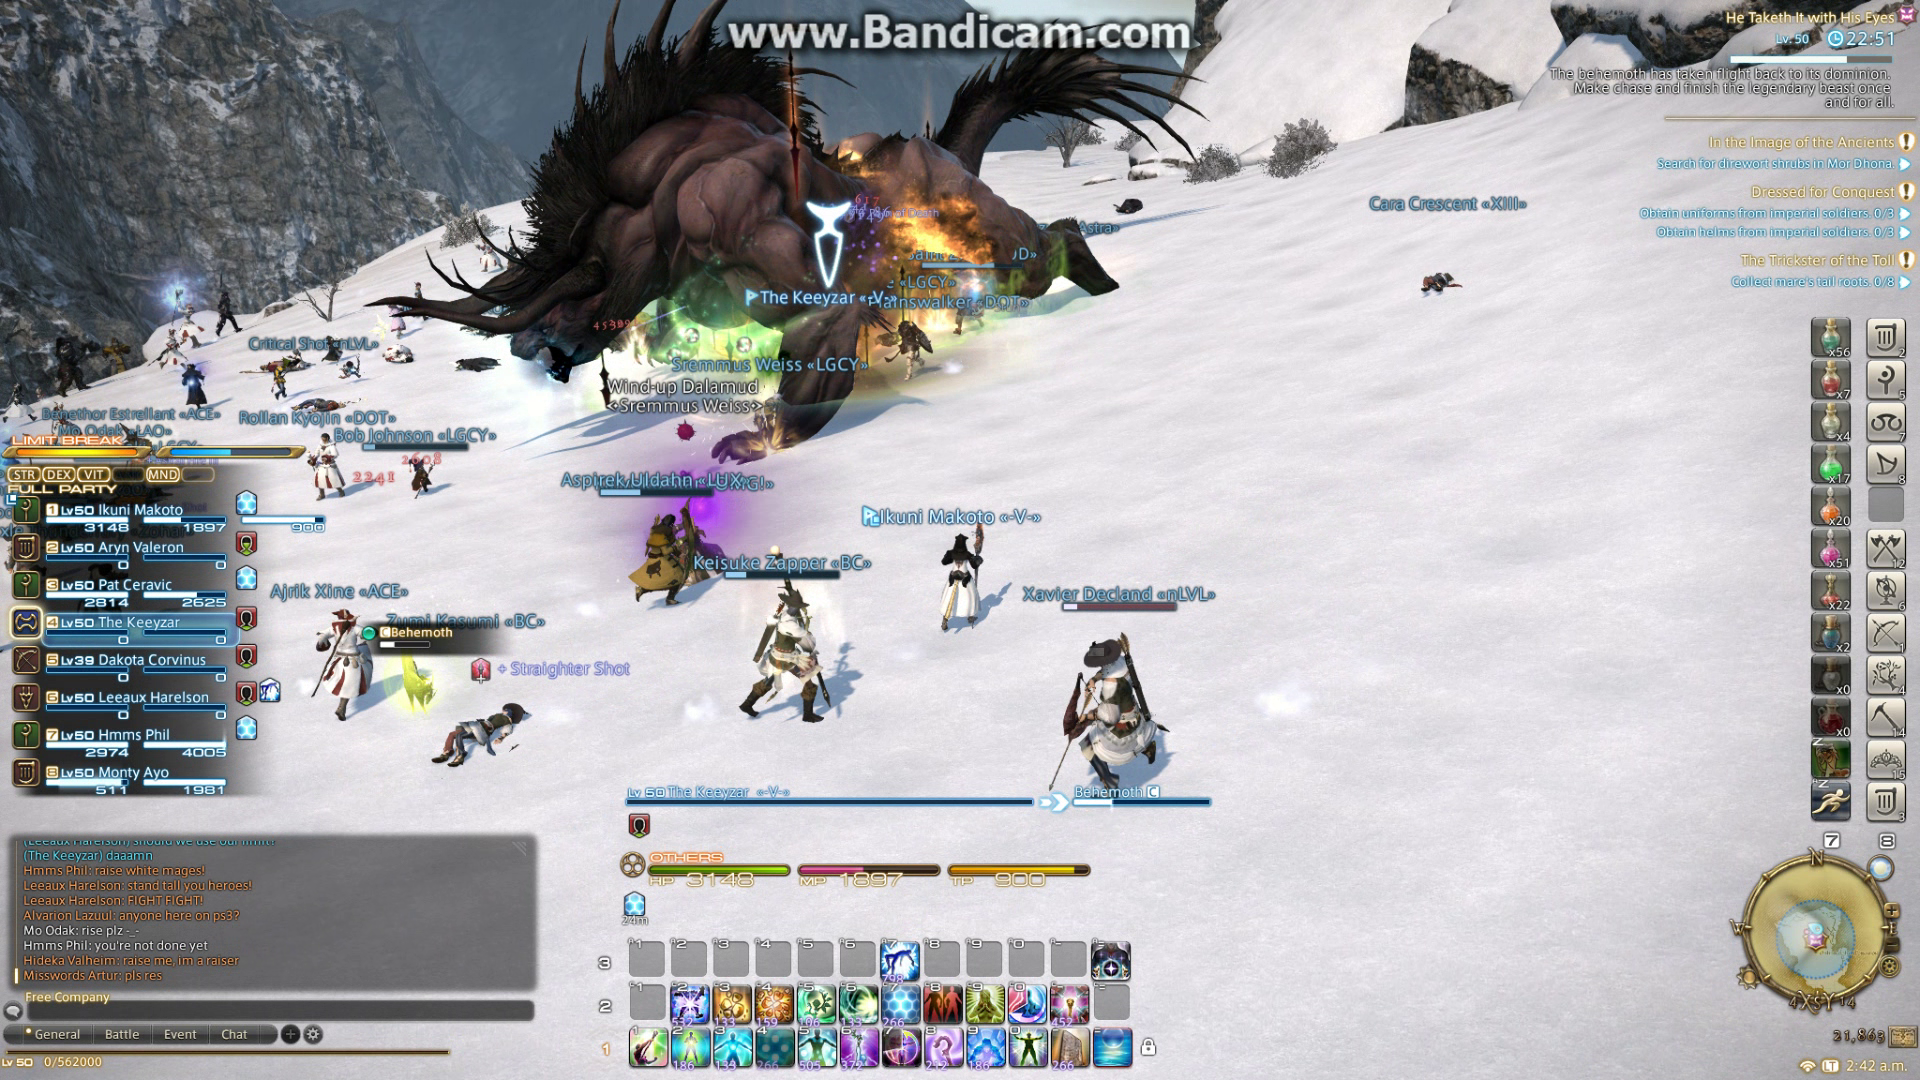 zoii ffxiv queue matter high realization letting that bullshit anyone number does waves random your points dont made everything fates where weve been queues odinbehemoth have large during come